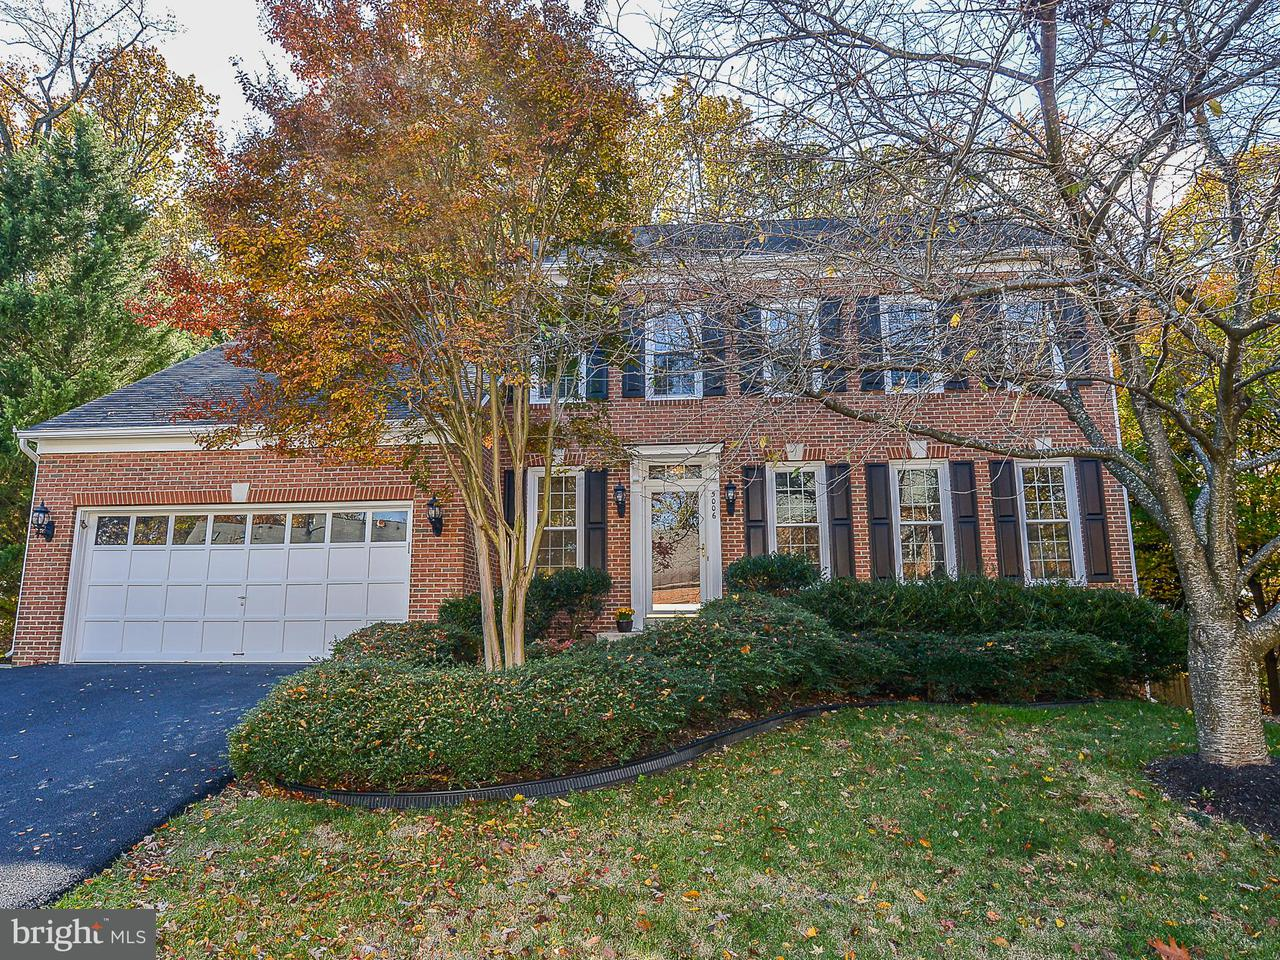 Single Family Home for Sale at 5006 WHISPER WILLOW Drive 5006 WHISPER WILLOW Drive Fairfax, Virginia 22030 United States